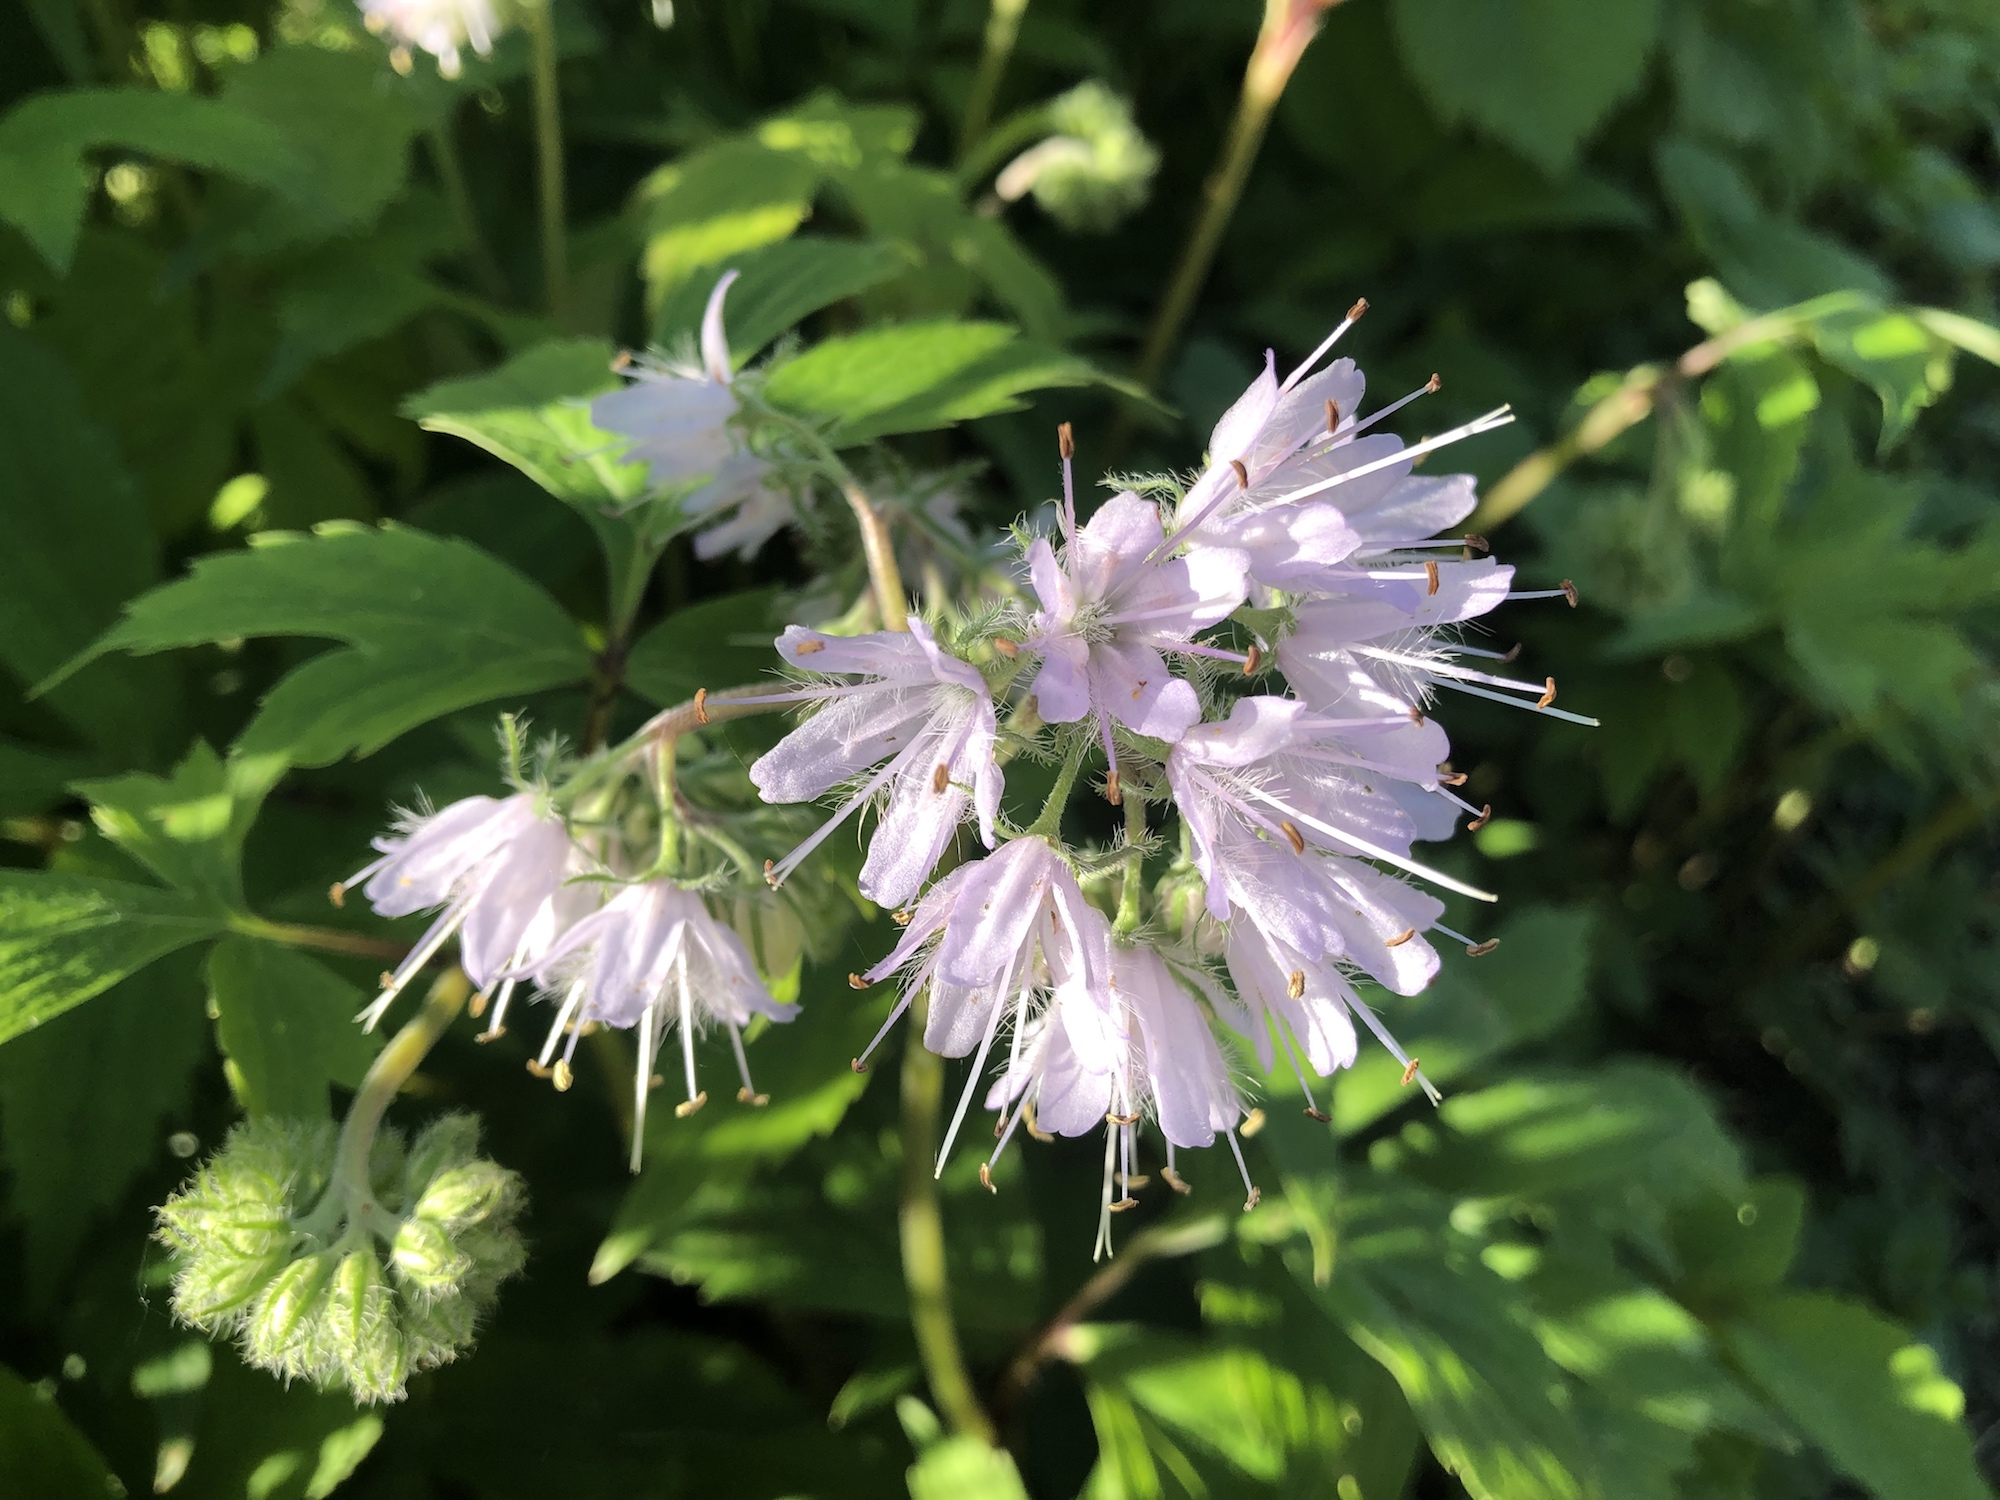 Virginia Waterleaf in Madison, Wisconsin on May 25, 2019.